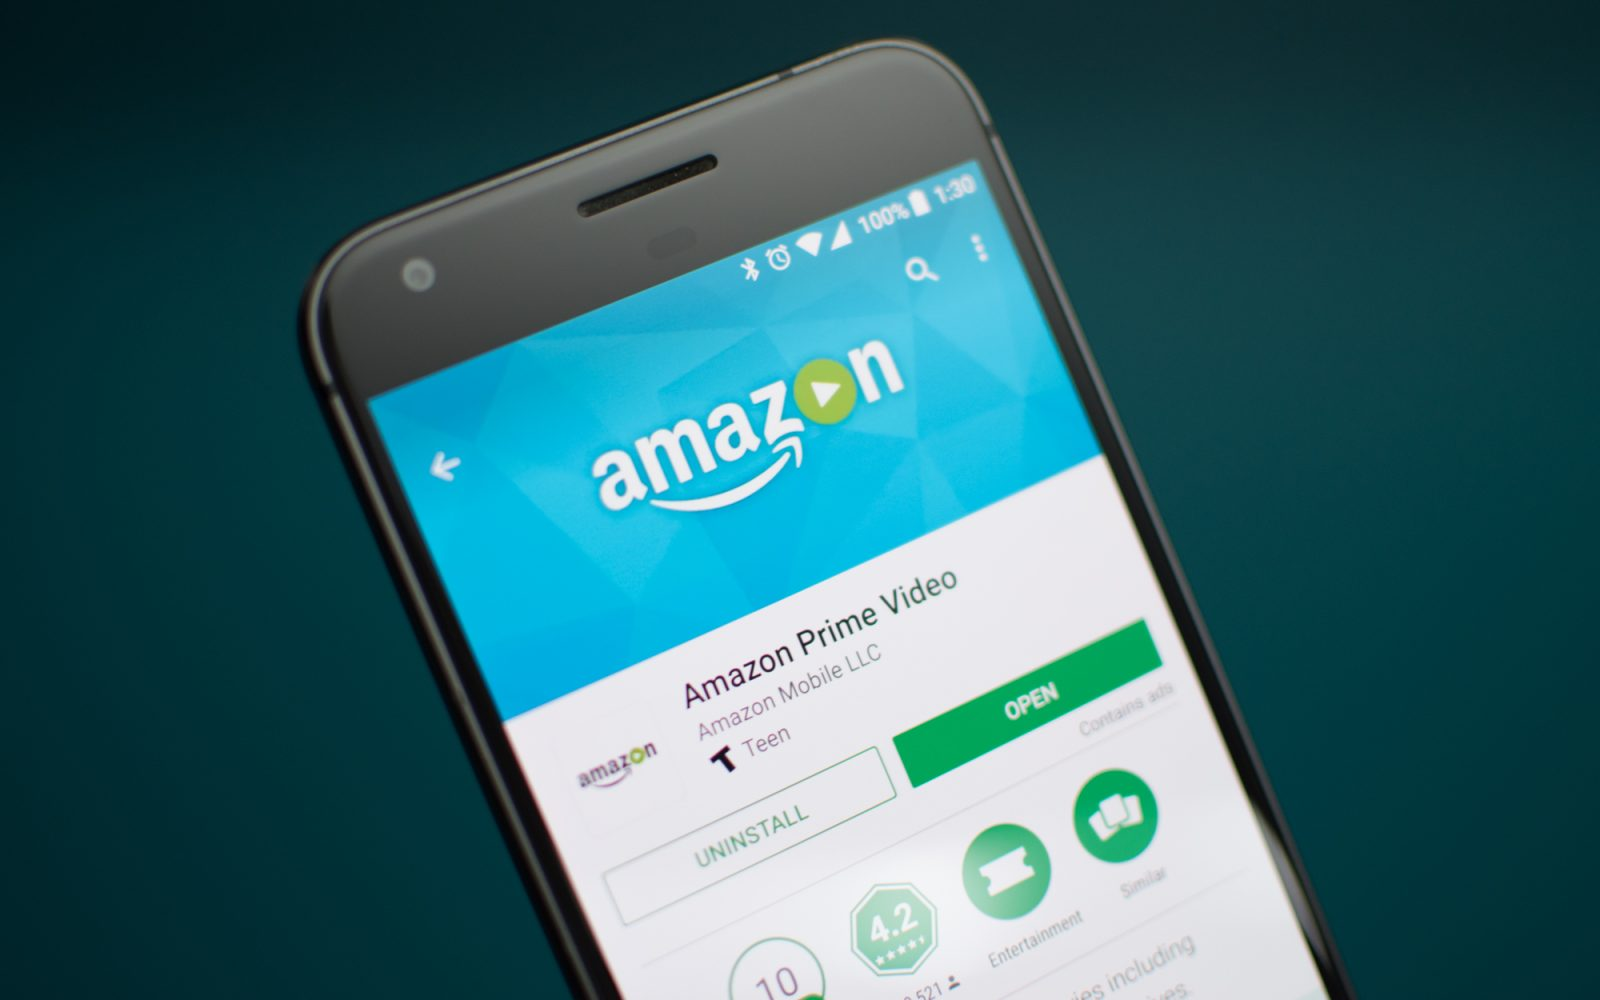 Amazon Prime Video coming to Chromecast, Android TV - 9to5Google